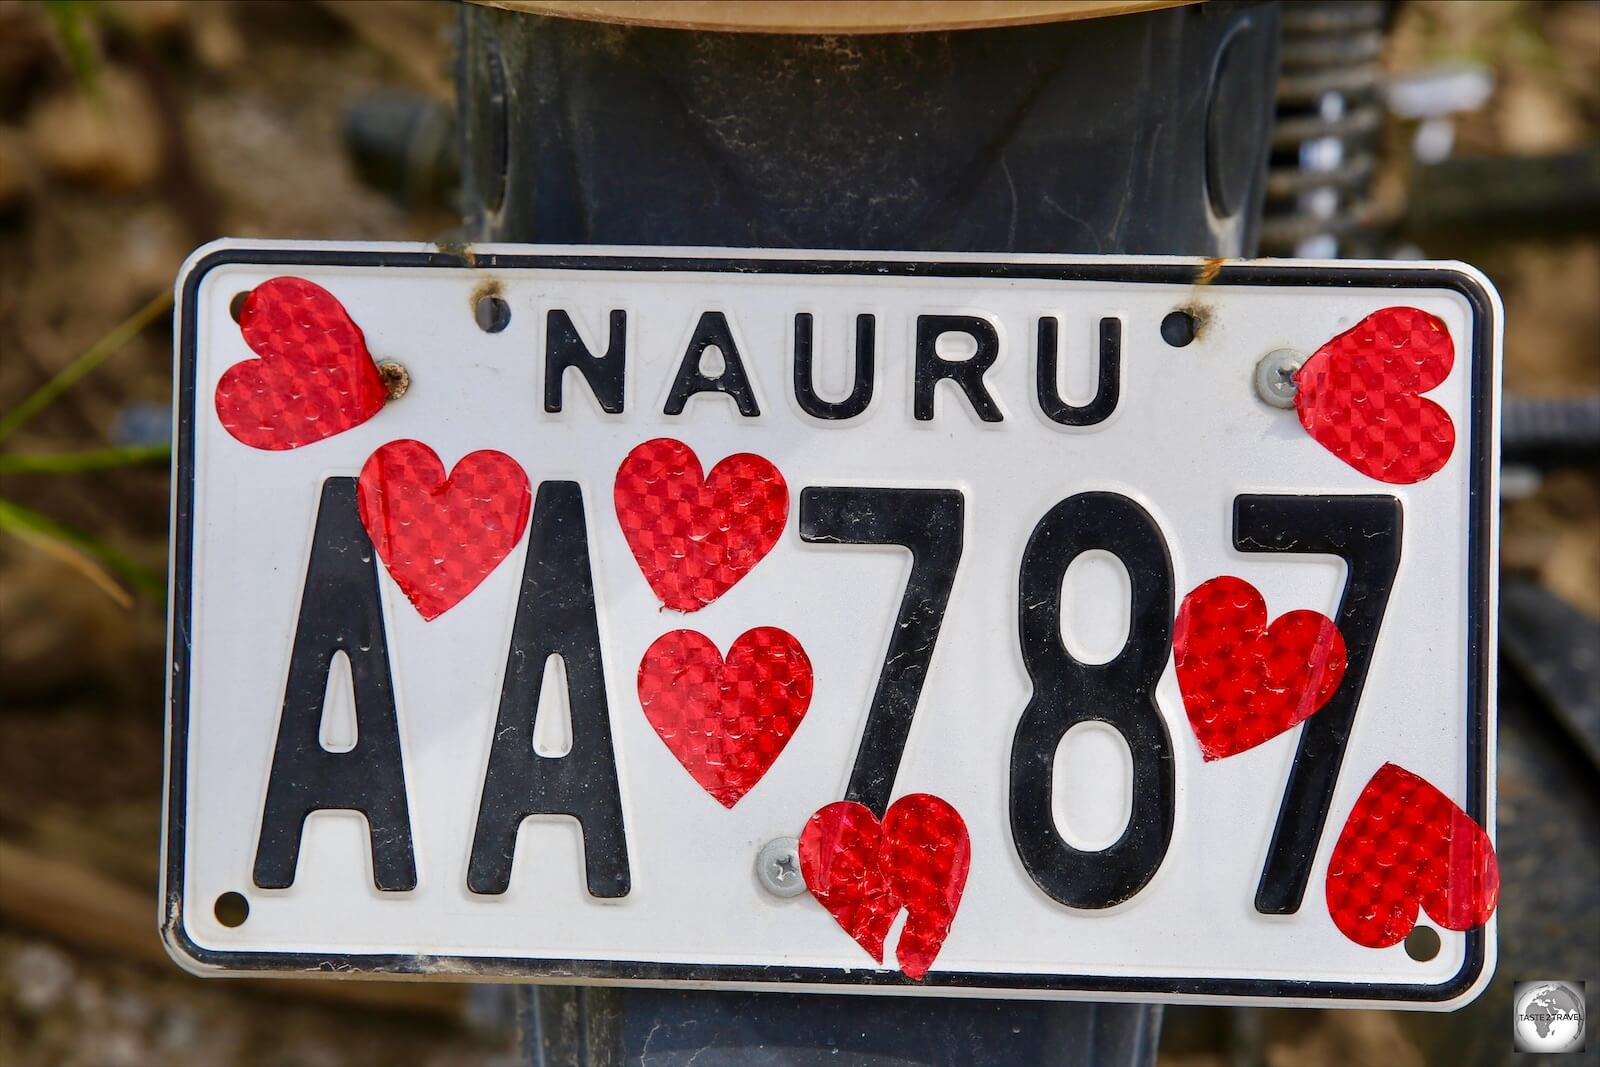 Wonderful Nauru!